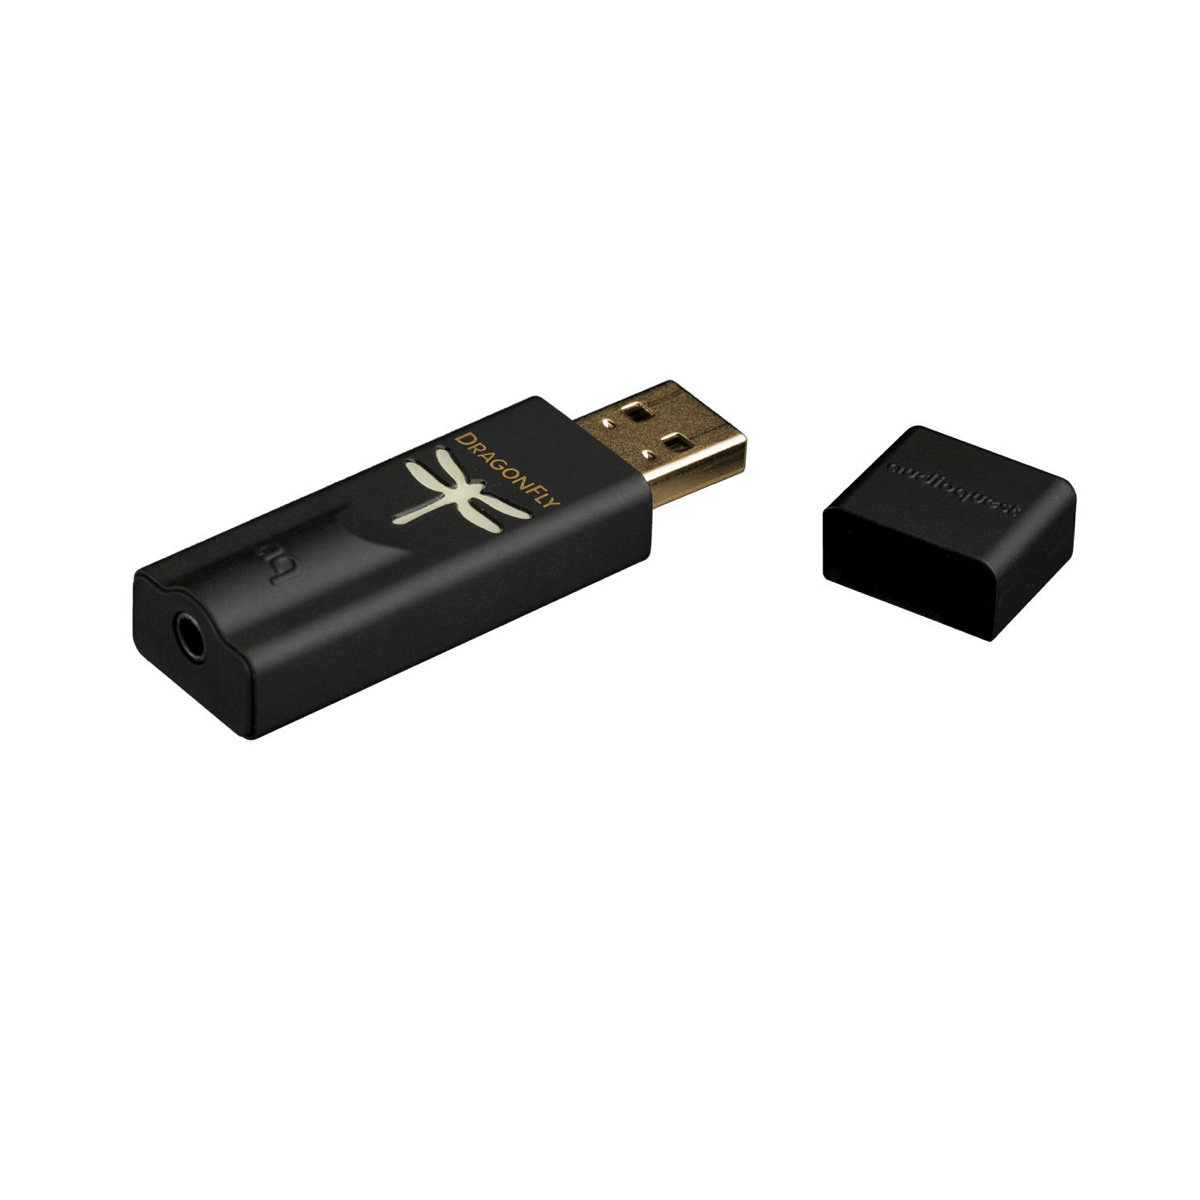 AudioQuest DragonFly Black - USB DAC + Preamp + Headphone Amplifier - AVStore.in